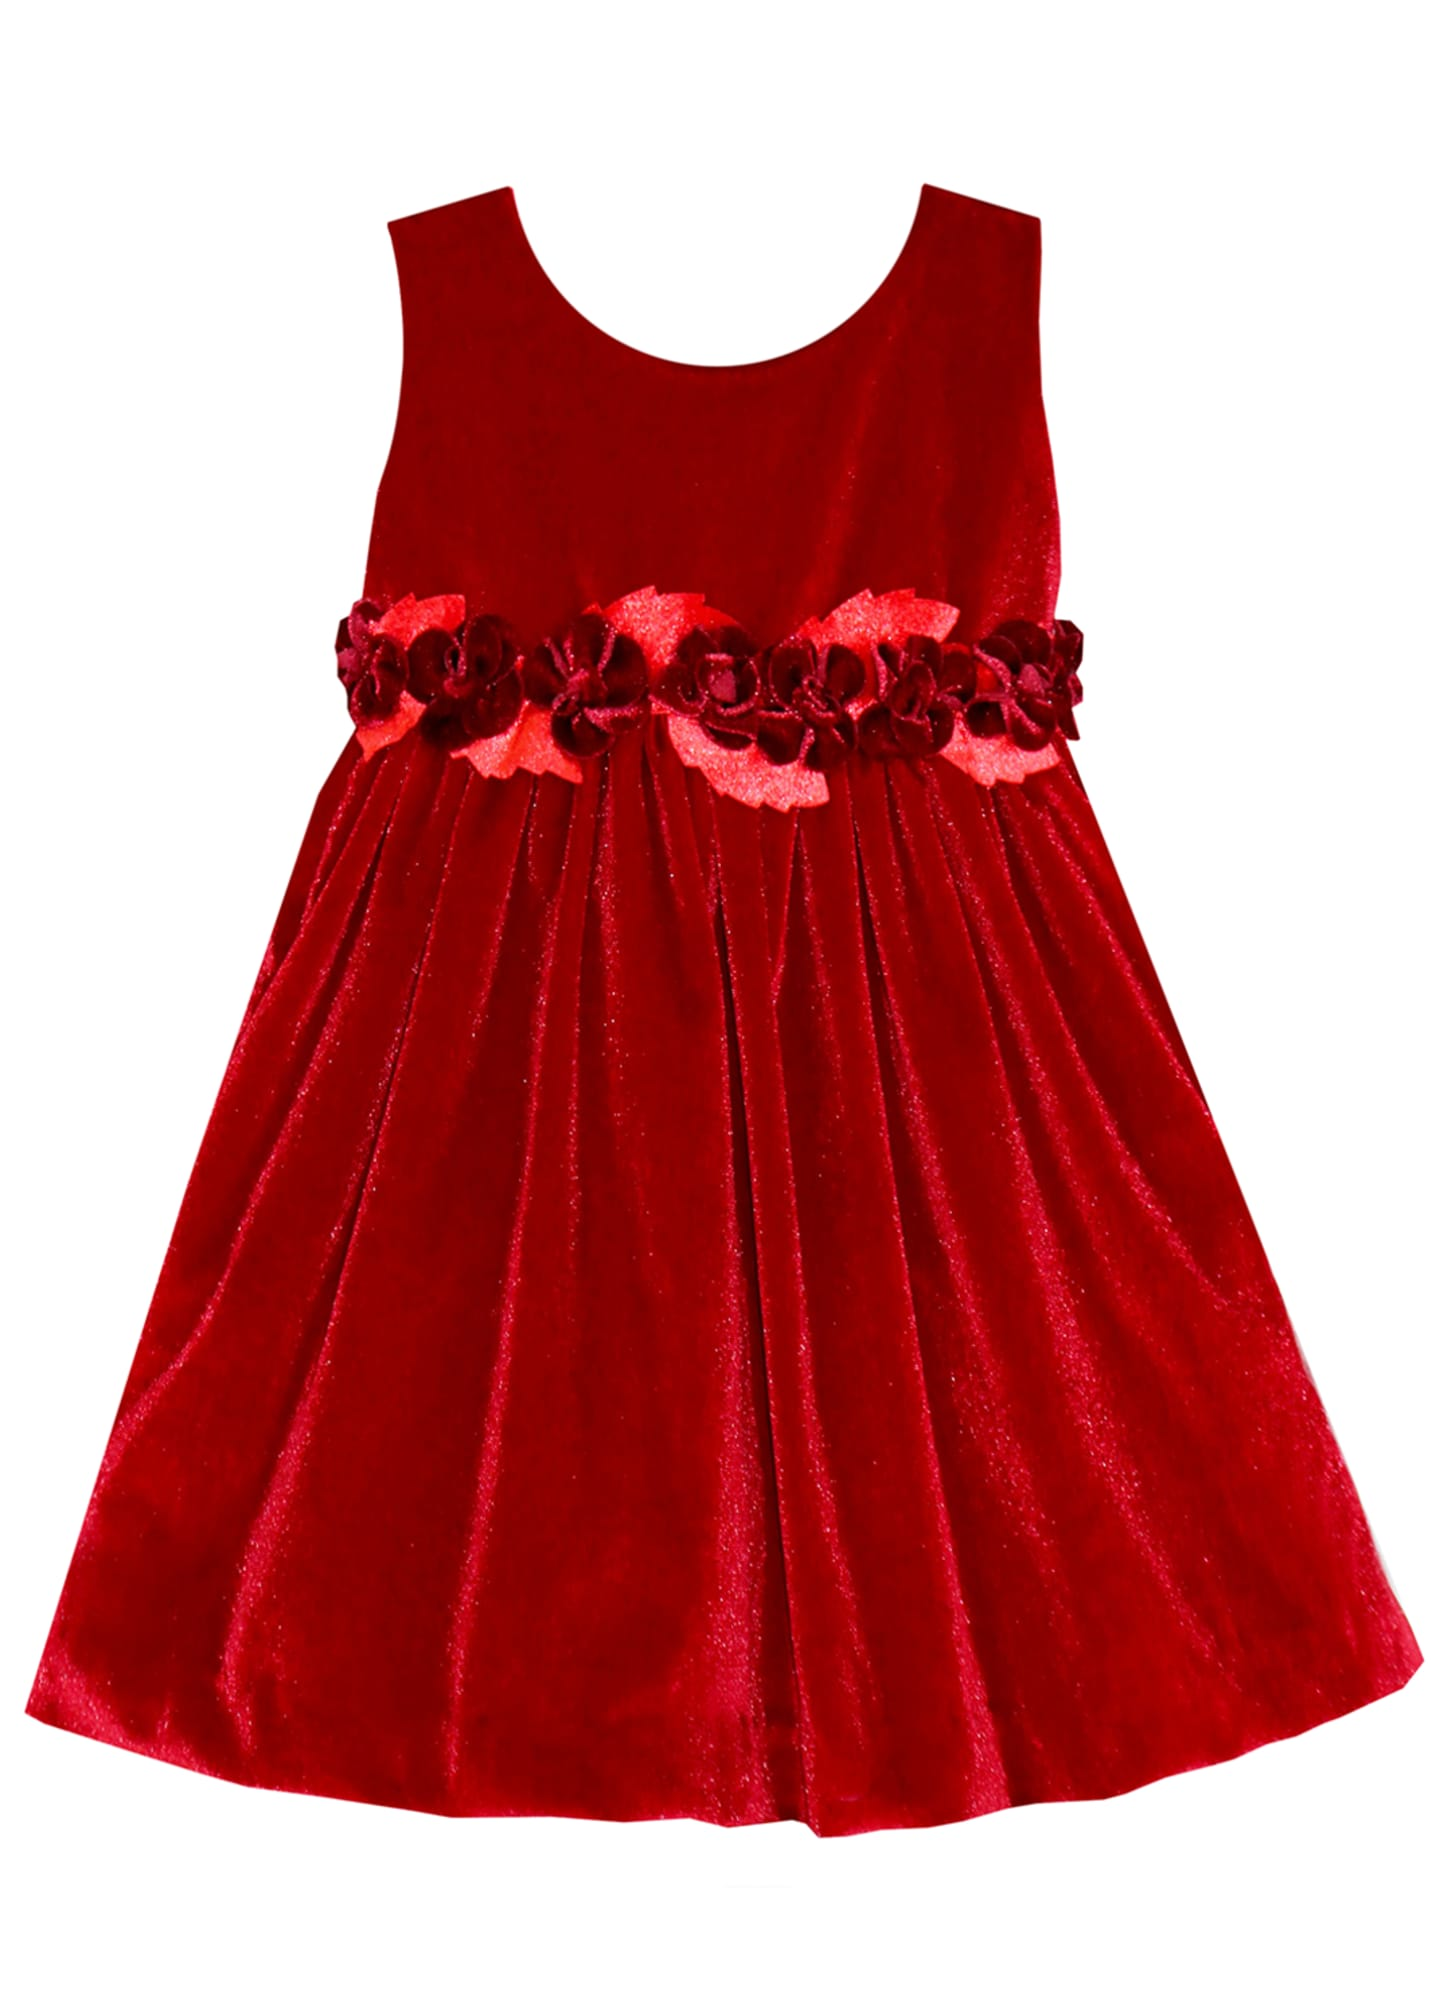 Isabel Garreton Sleeveless Velvet Holiday Dress w/ Rose